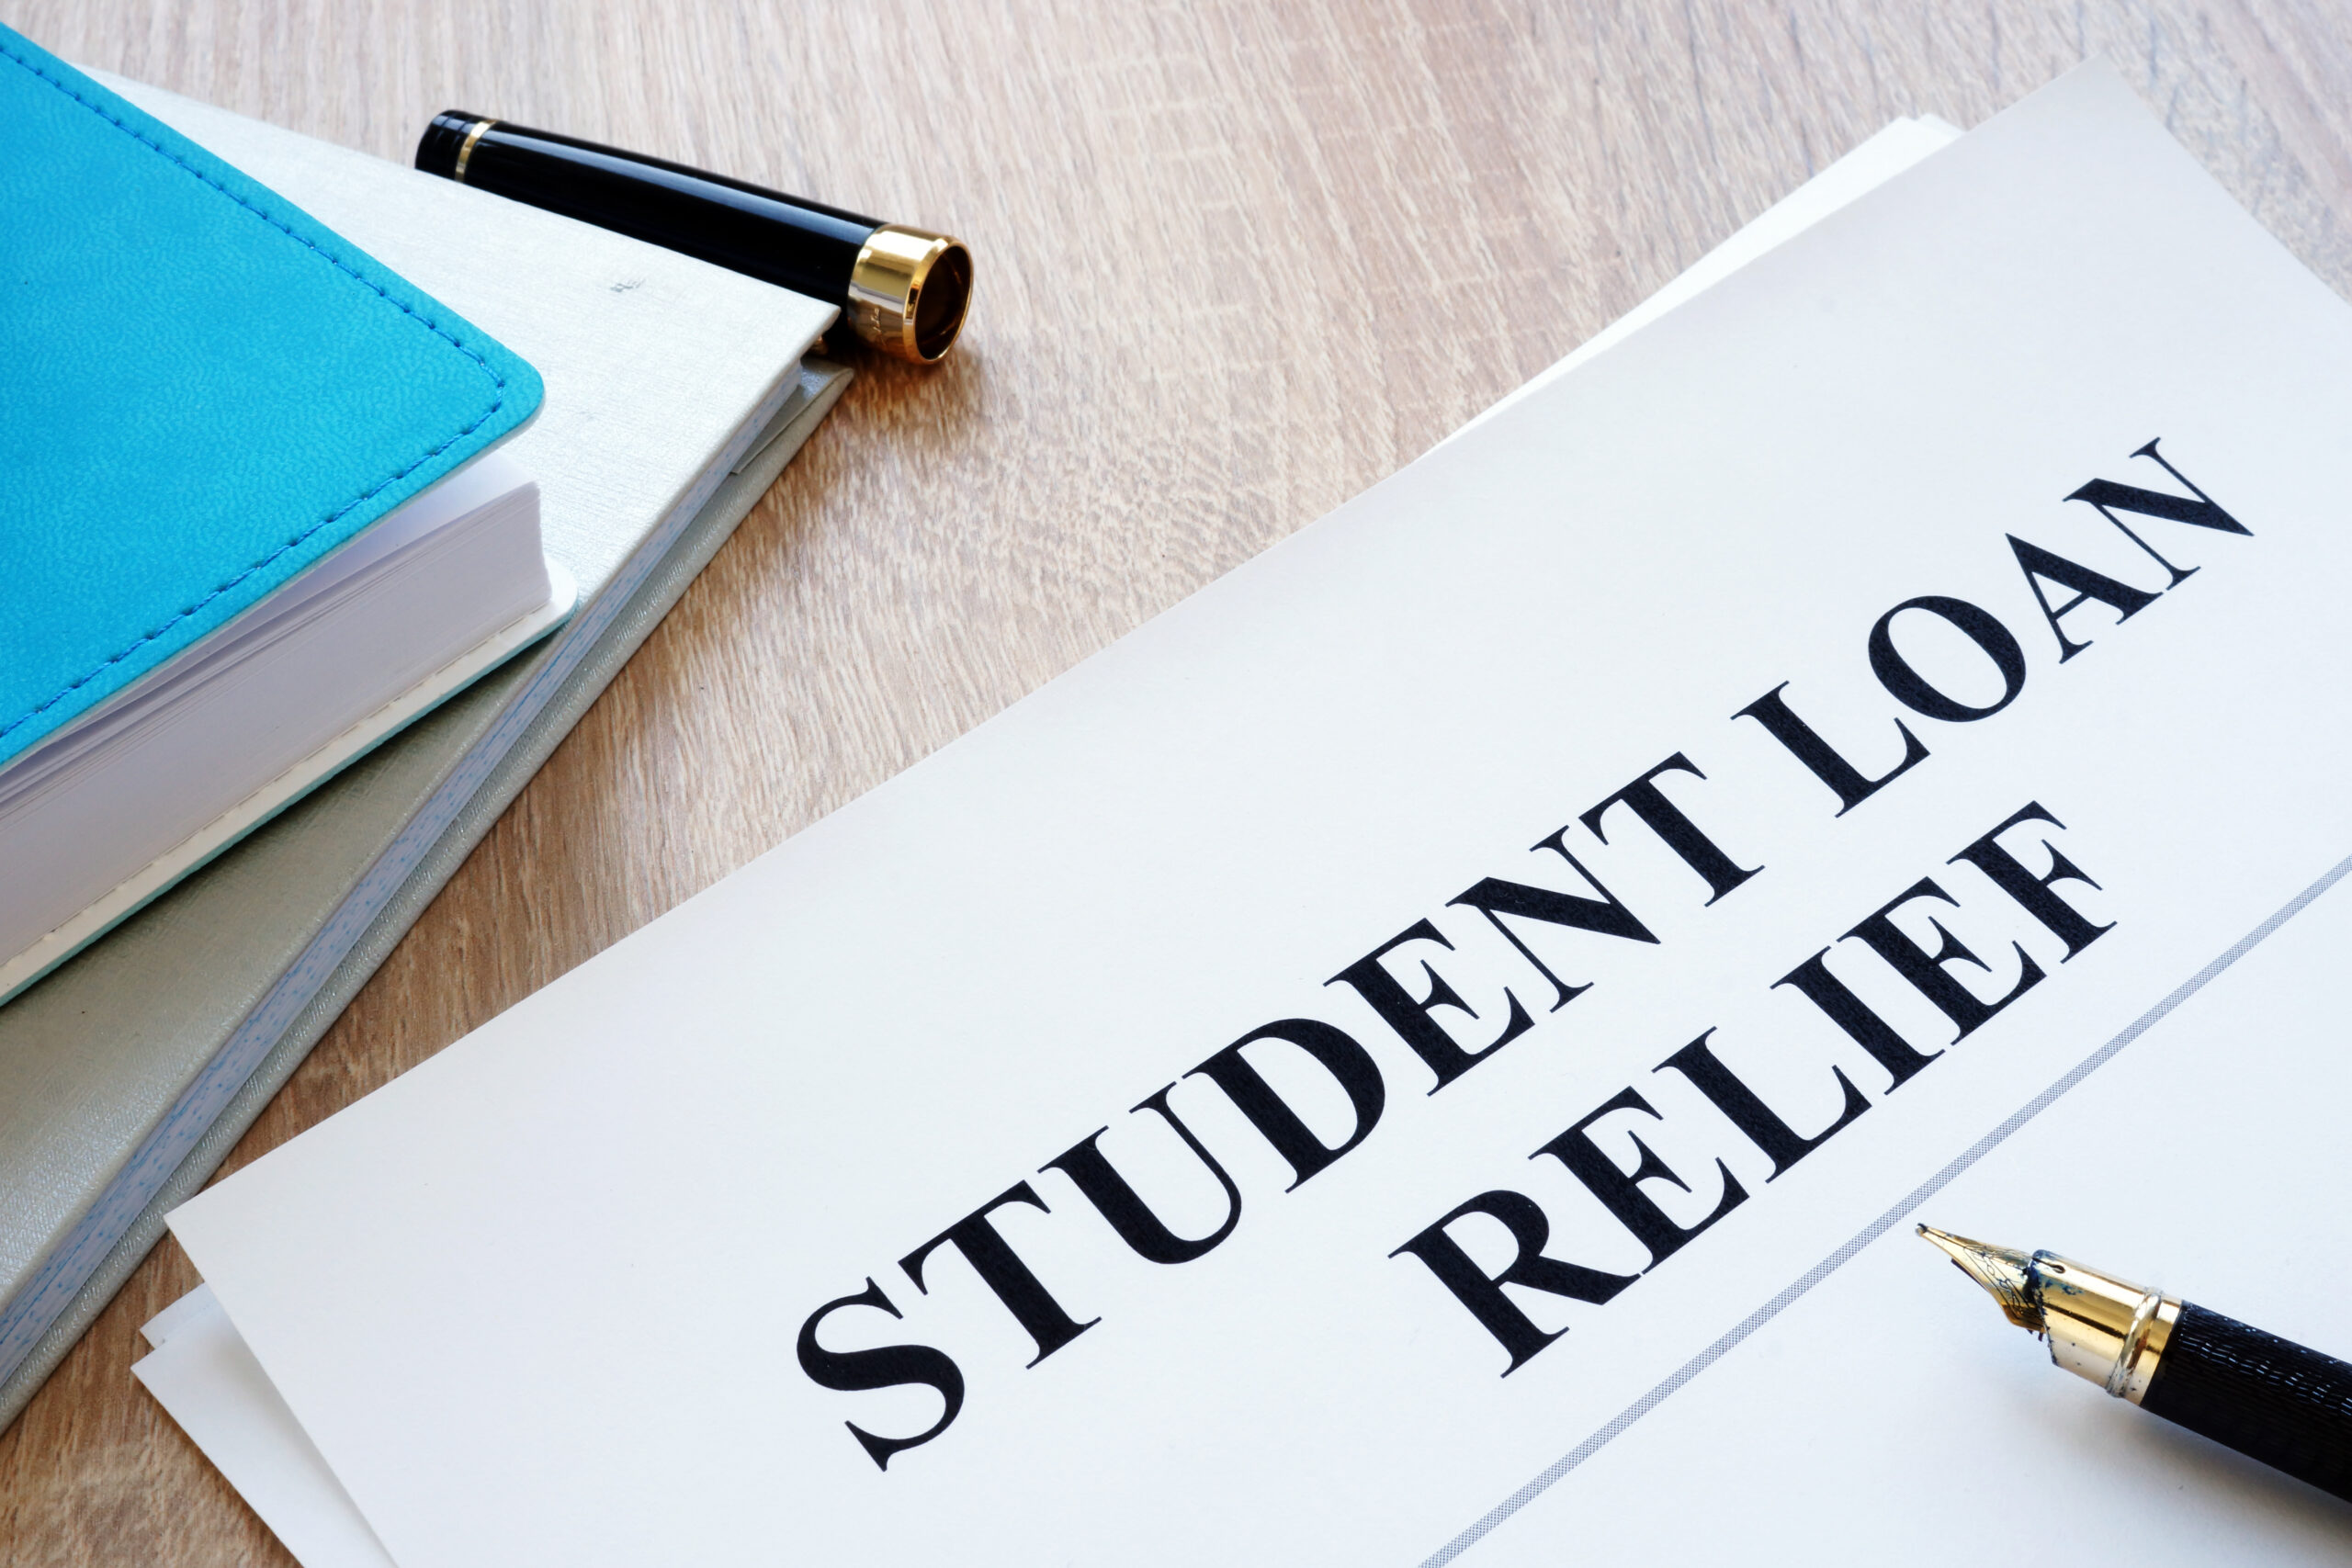 Student Loan Relief Application on Table